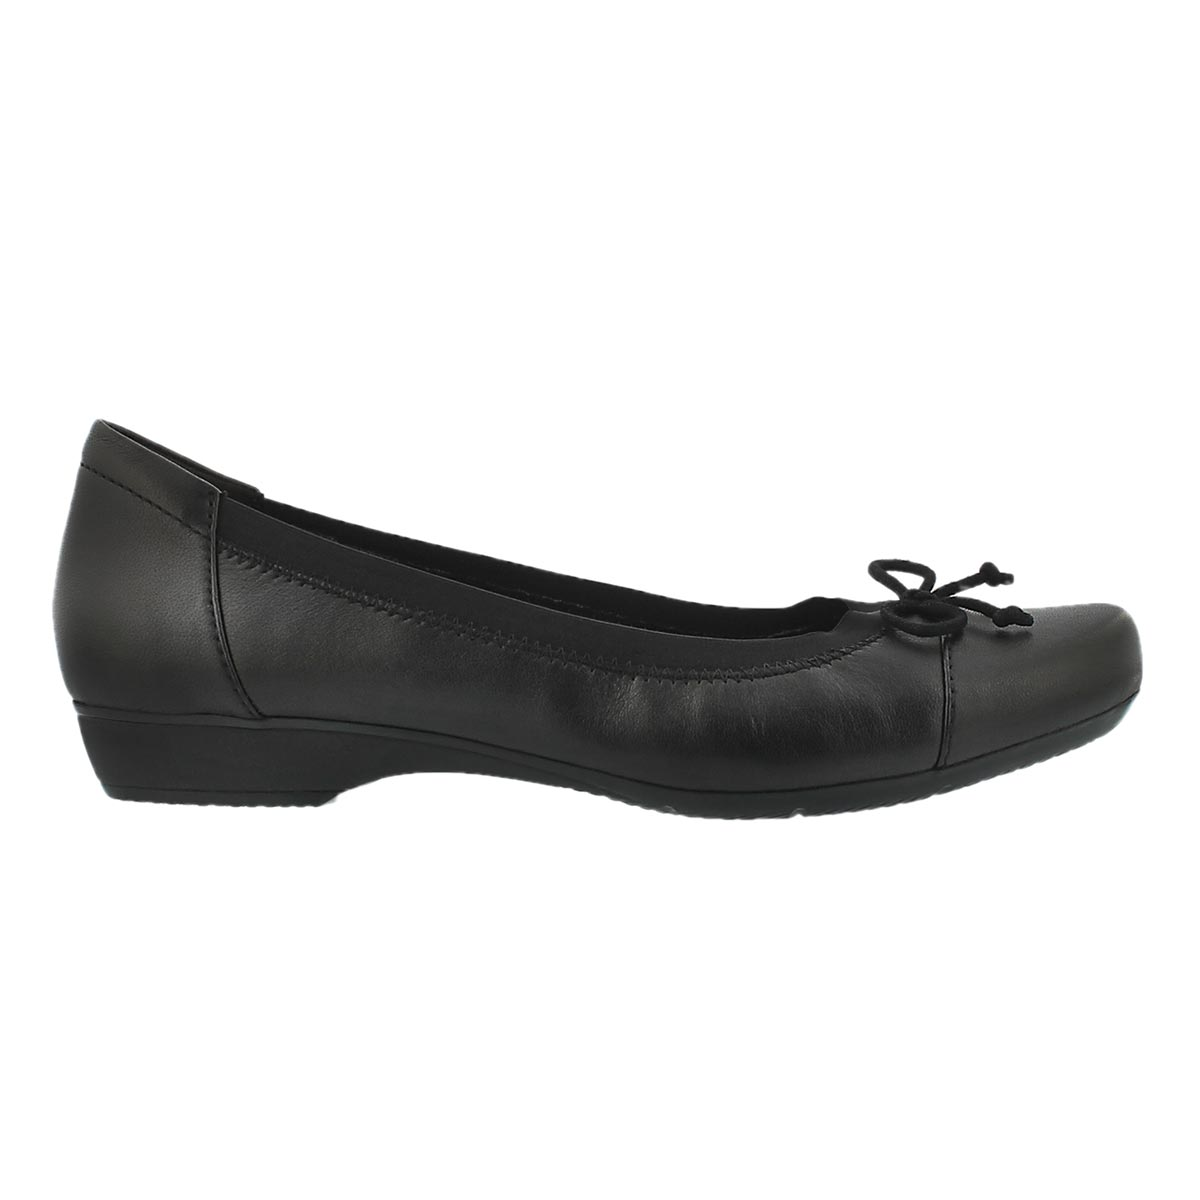 Lds Blanche Nora black dress flat - WIDE